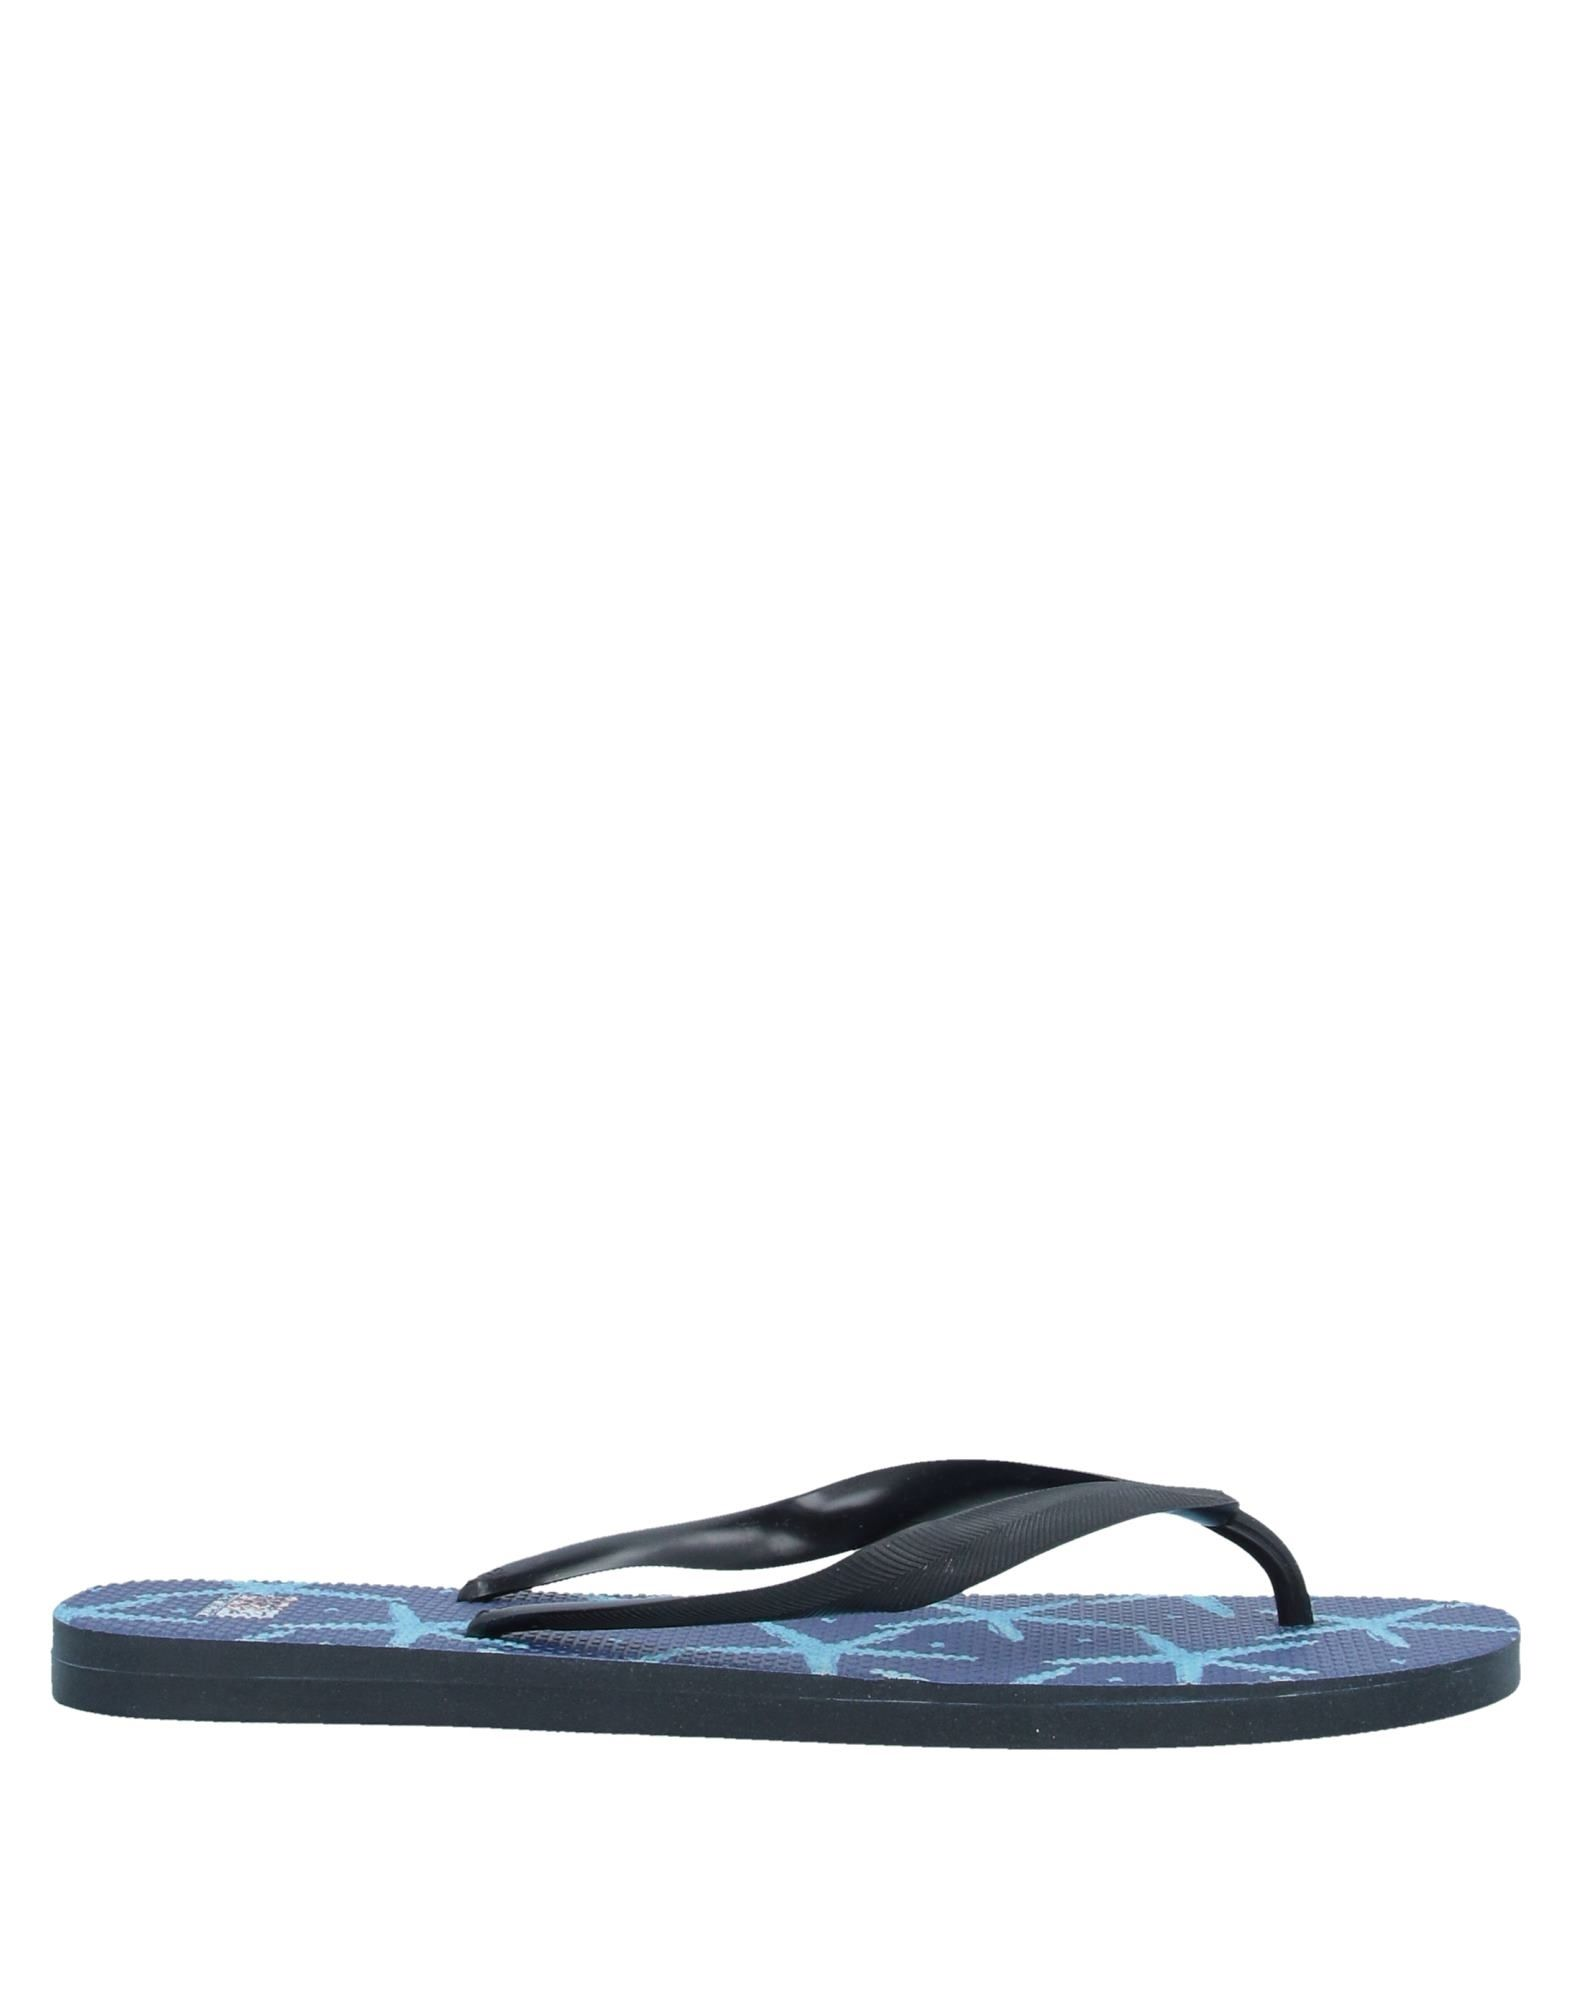 MC2 SAINT BARTH Toe strap sandals. logo, solid color, round toeline, flat, unlined, rubber sole, large sized. Rubber